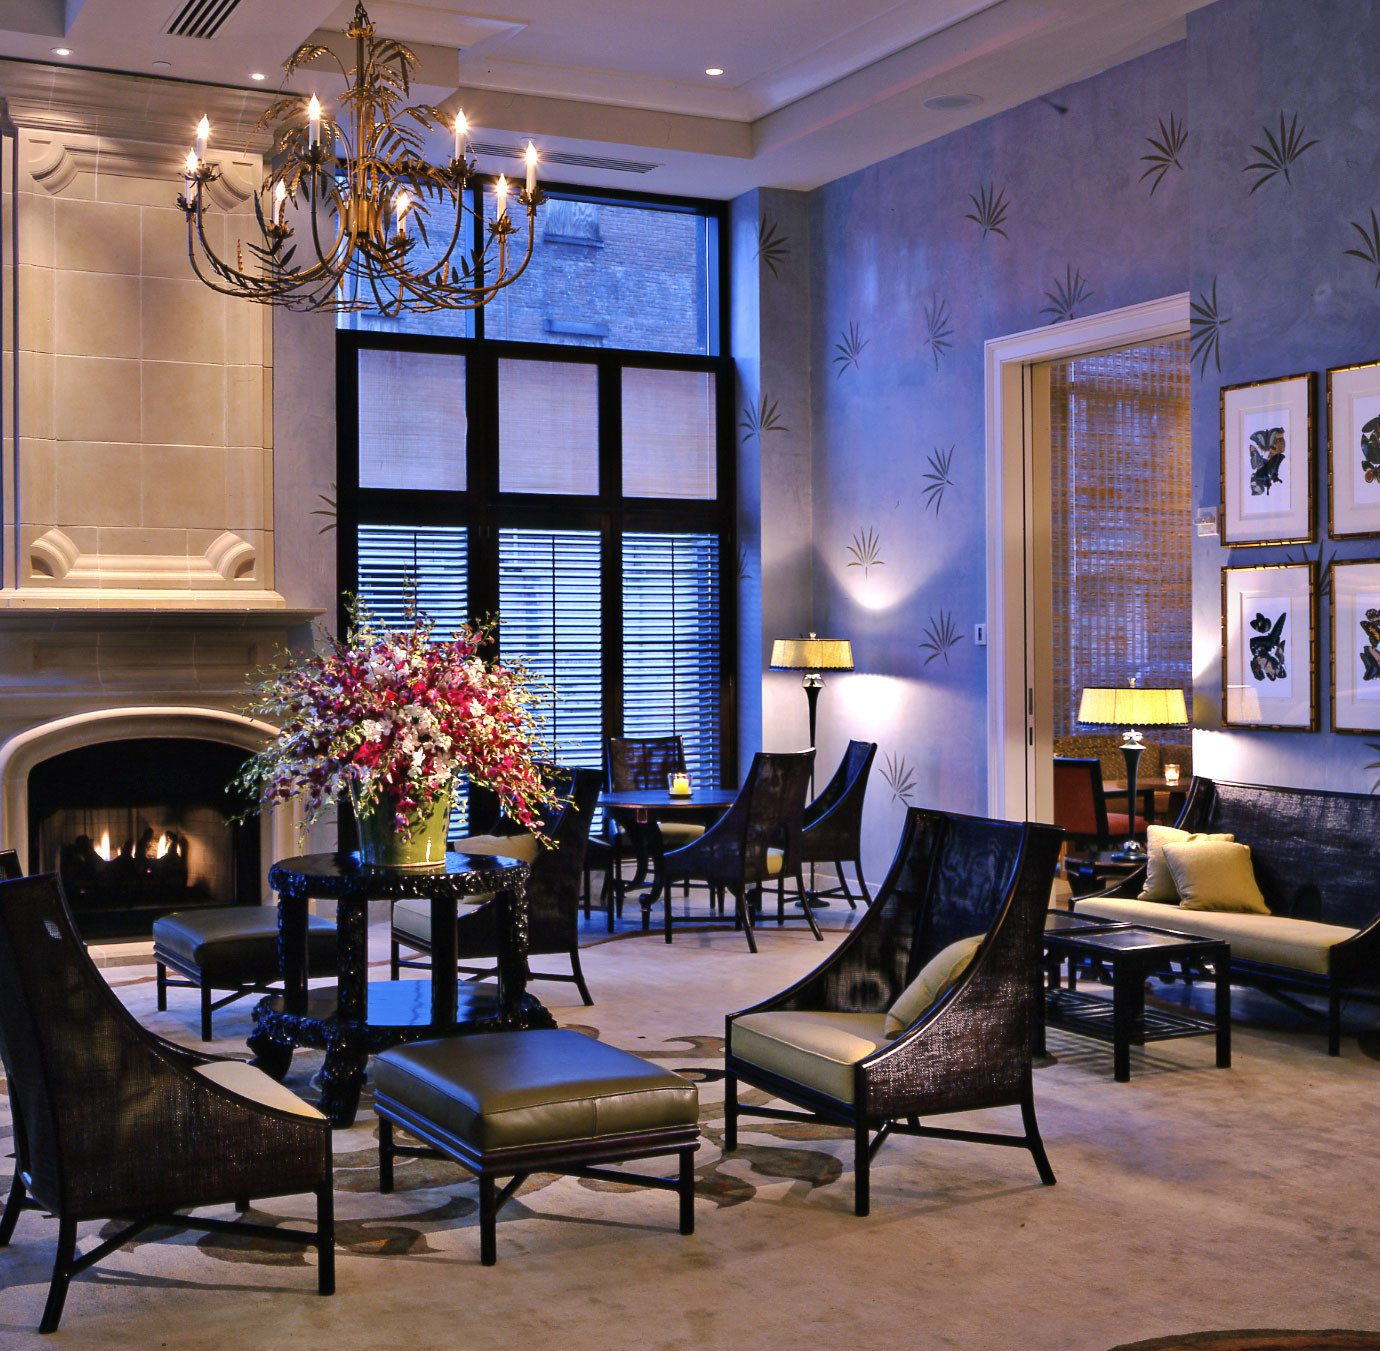 Hip Lounge Luxury Modern chair property living room home Lobby mansion condominium restaurant dining table